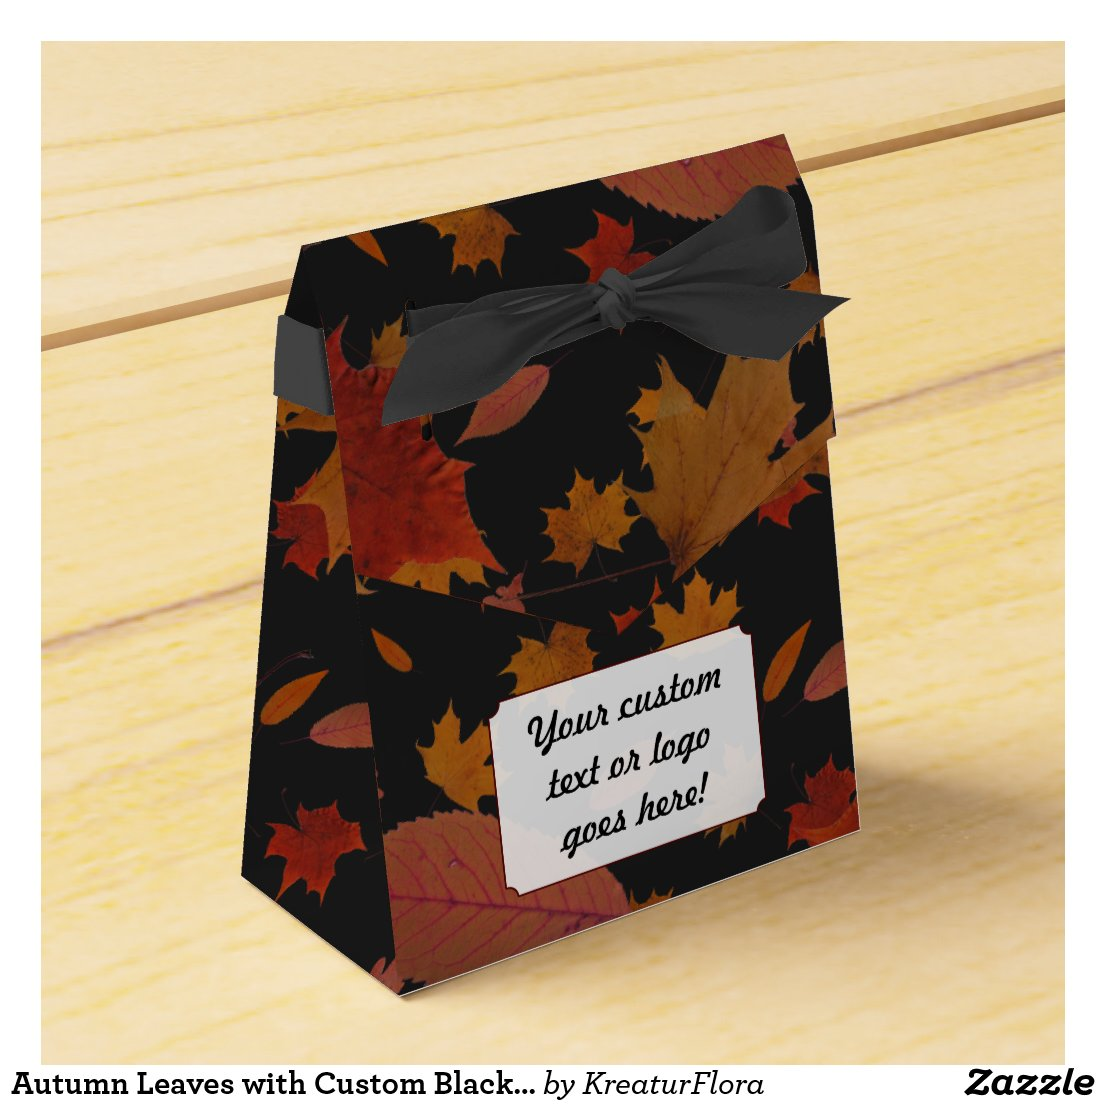 Autumn Leaves with Custom Black Color and Text